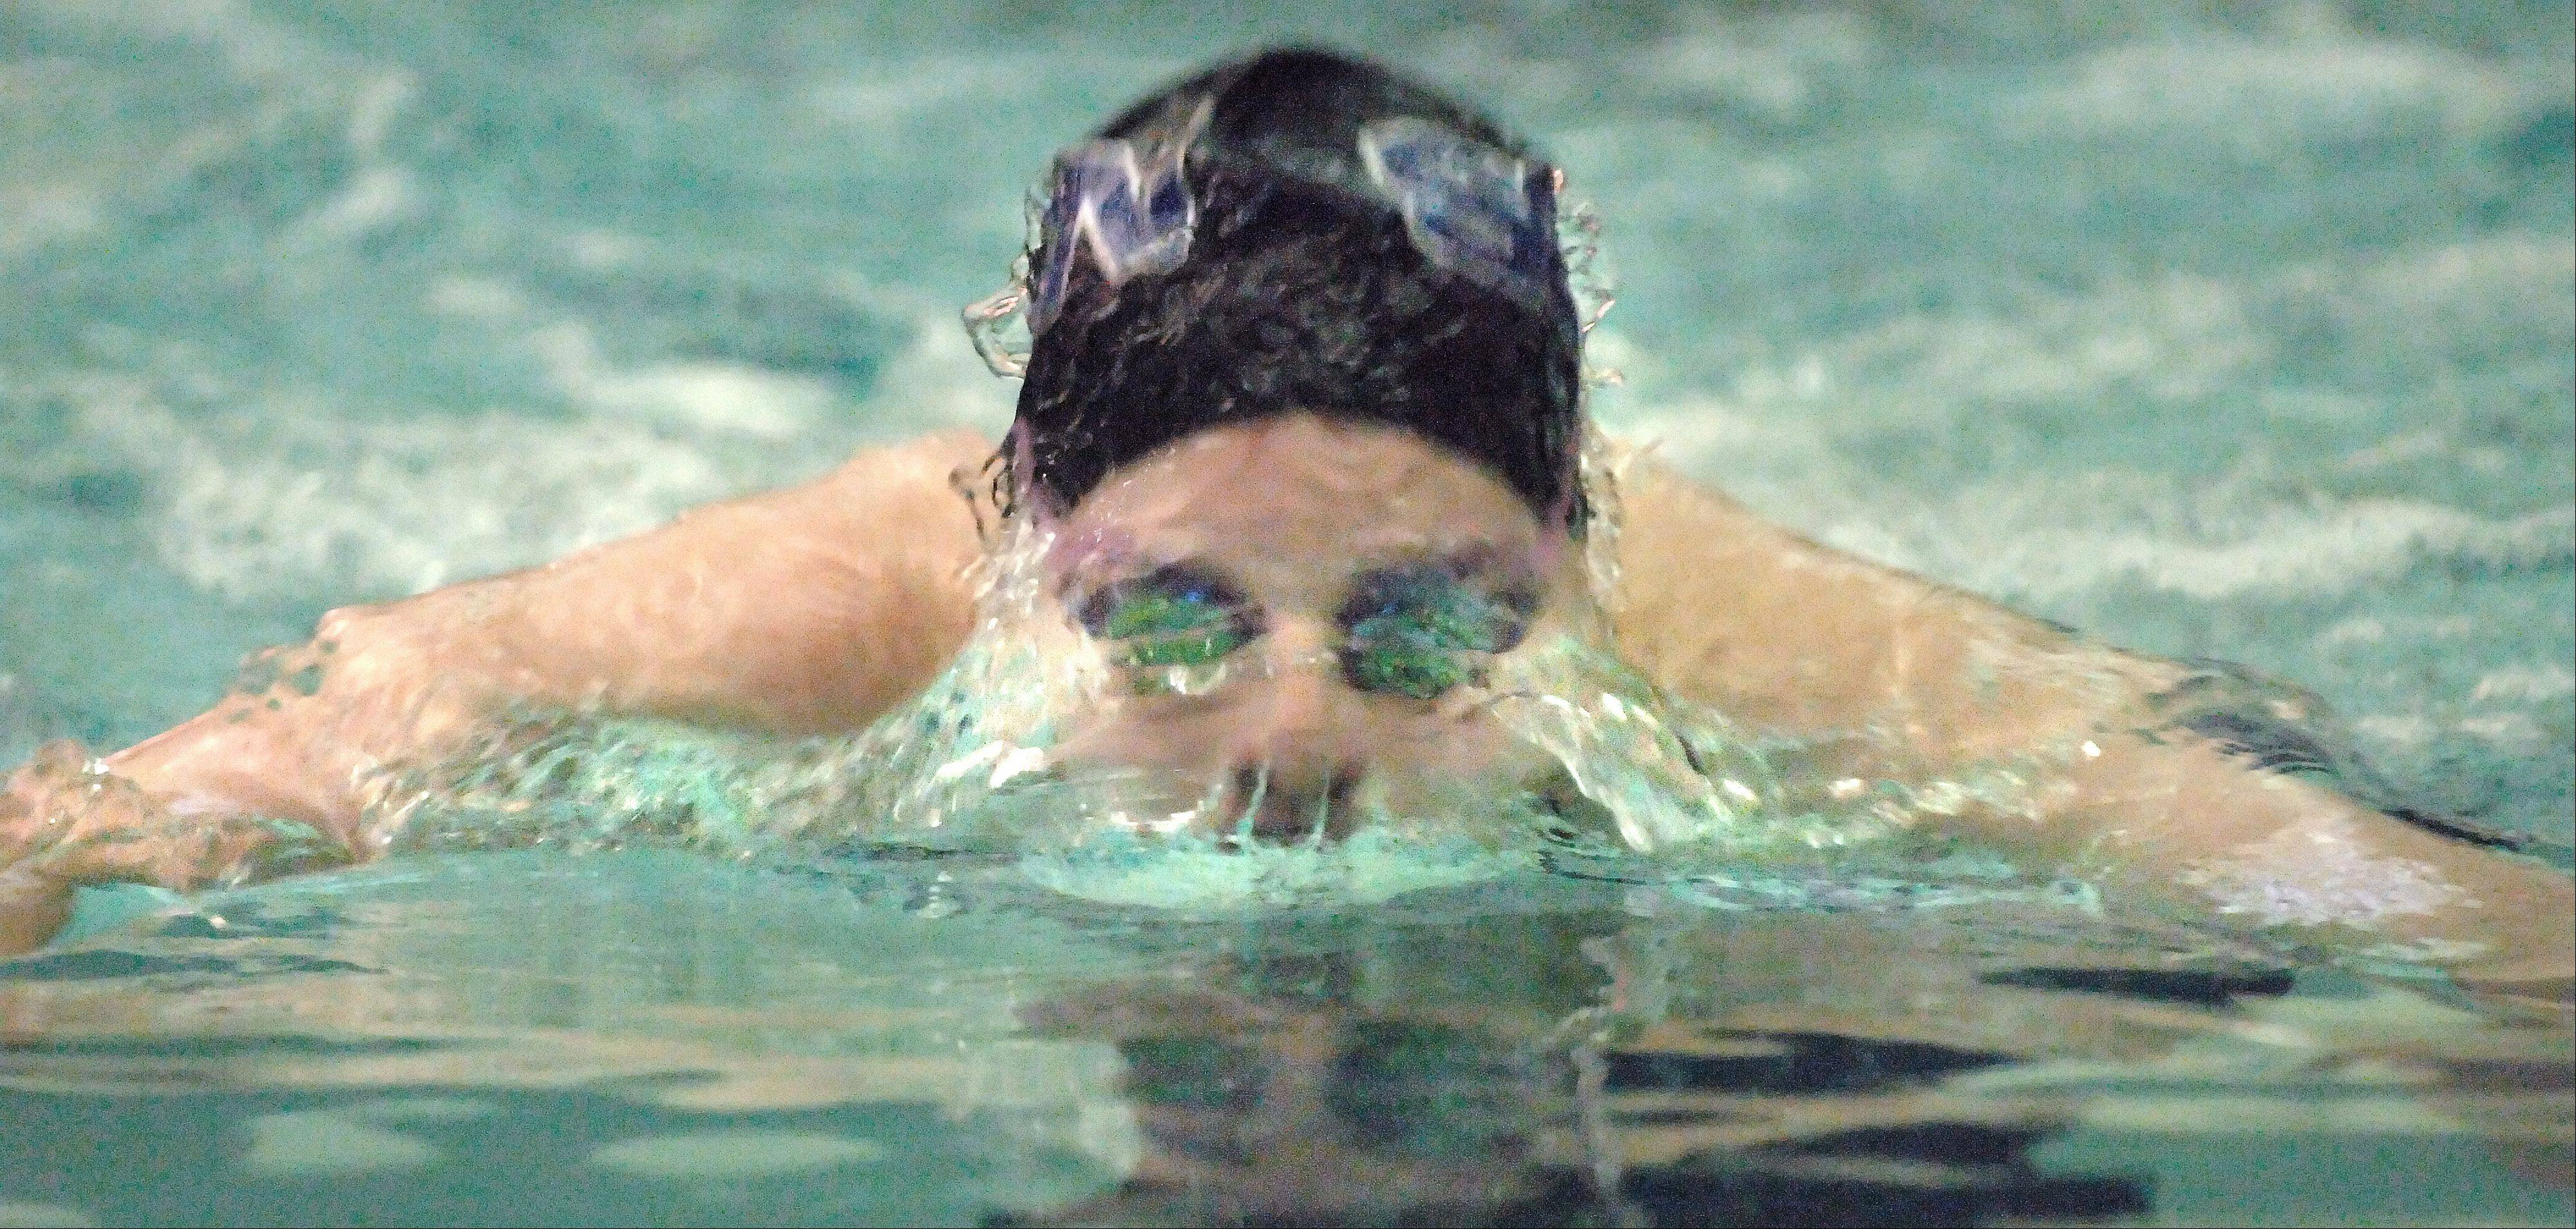 St. Charles North�s Meagan Popp, a freshman, emerges from the depths to win the 100 Yard Breaststroke against St. Charles East Thursday.